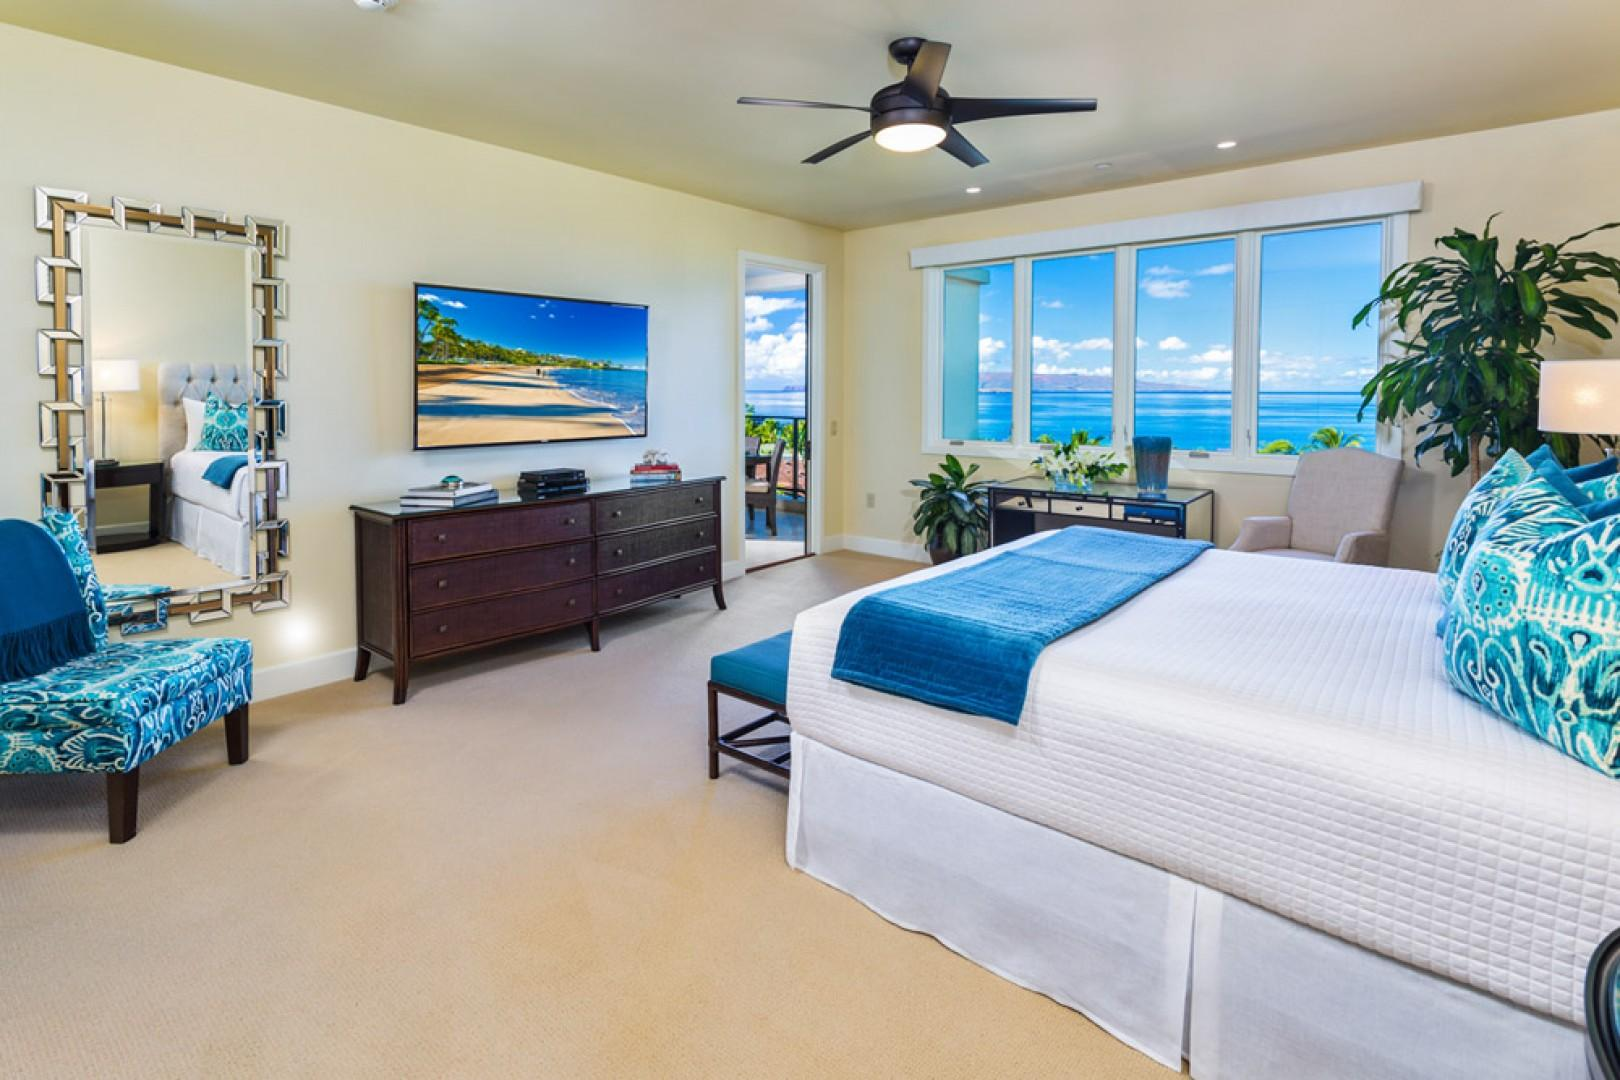 J405 Sea Breeze Suite Ocean View Master Bedroom with Direct Ocean Patio Access, King Bed, Desk, Seating, Private Bath, and All New State of Art Entertainment System